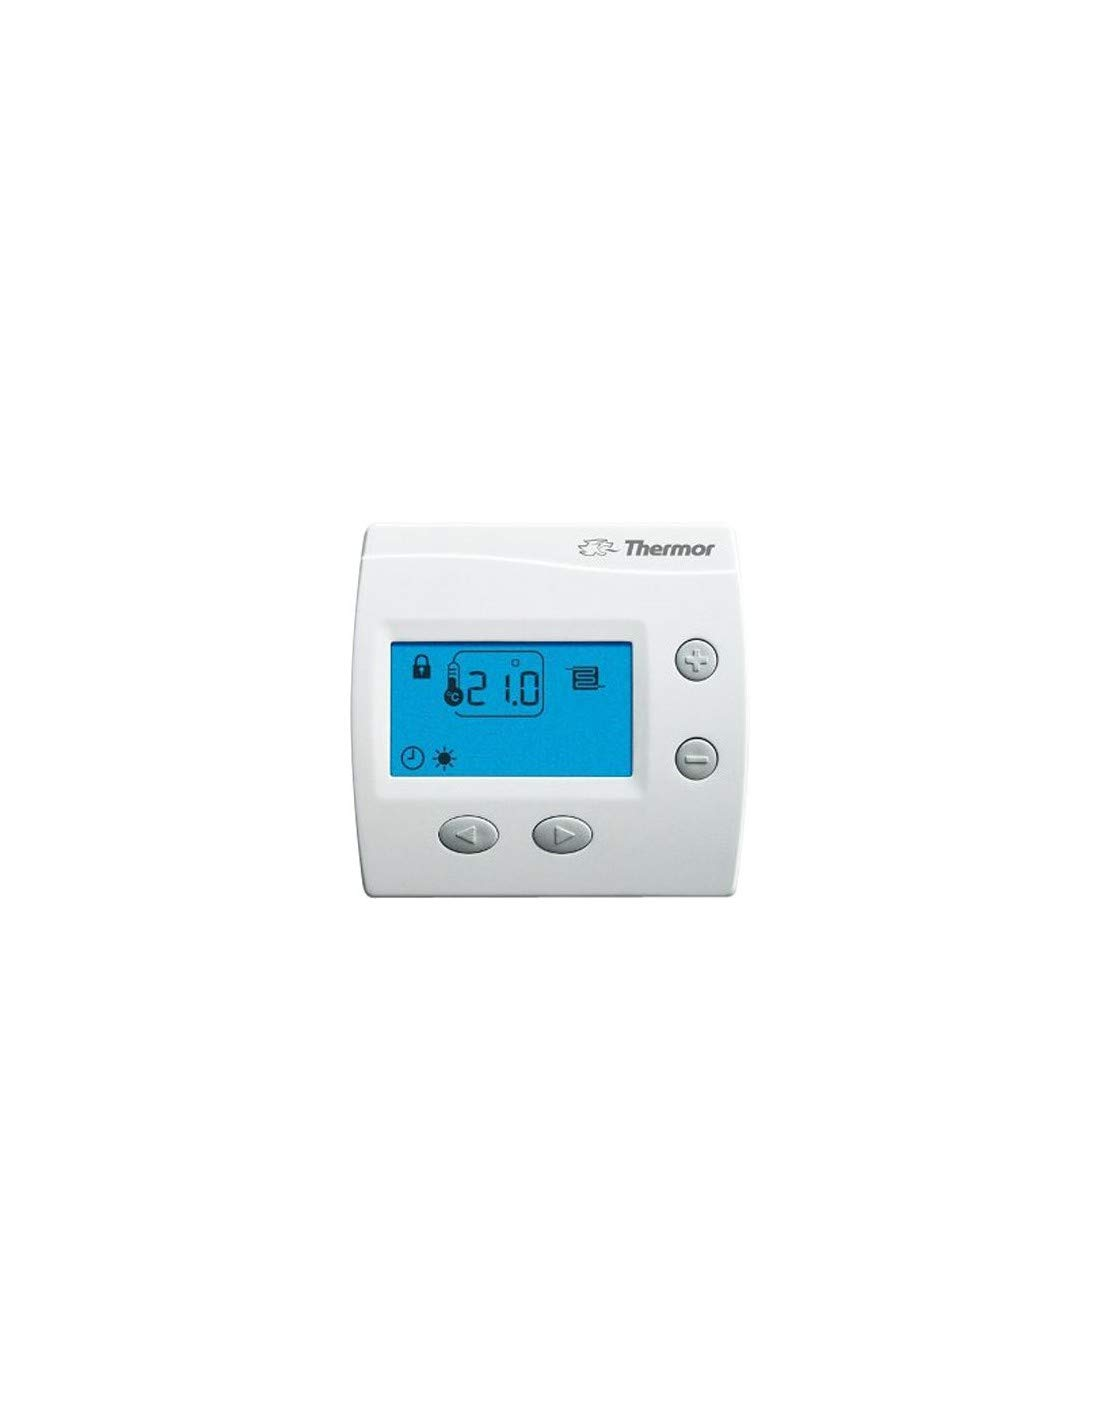 Thermostat d'Ambiance Digital KS THERMOR 400104 1636